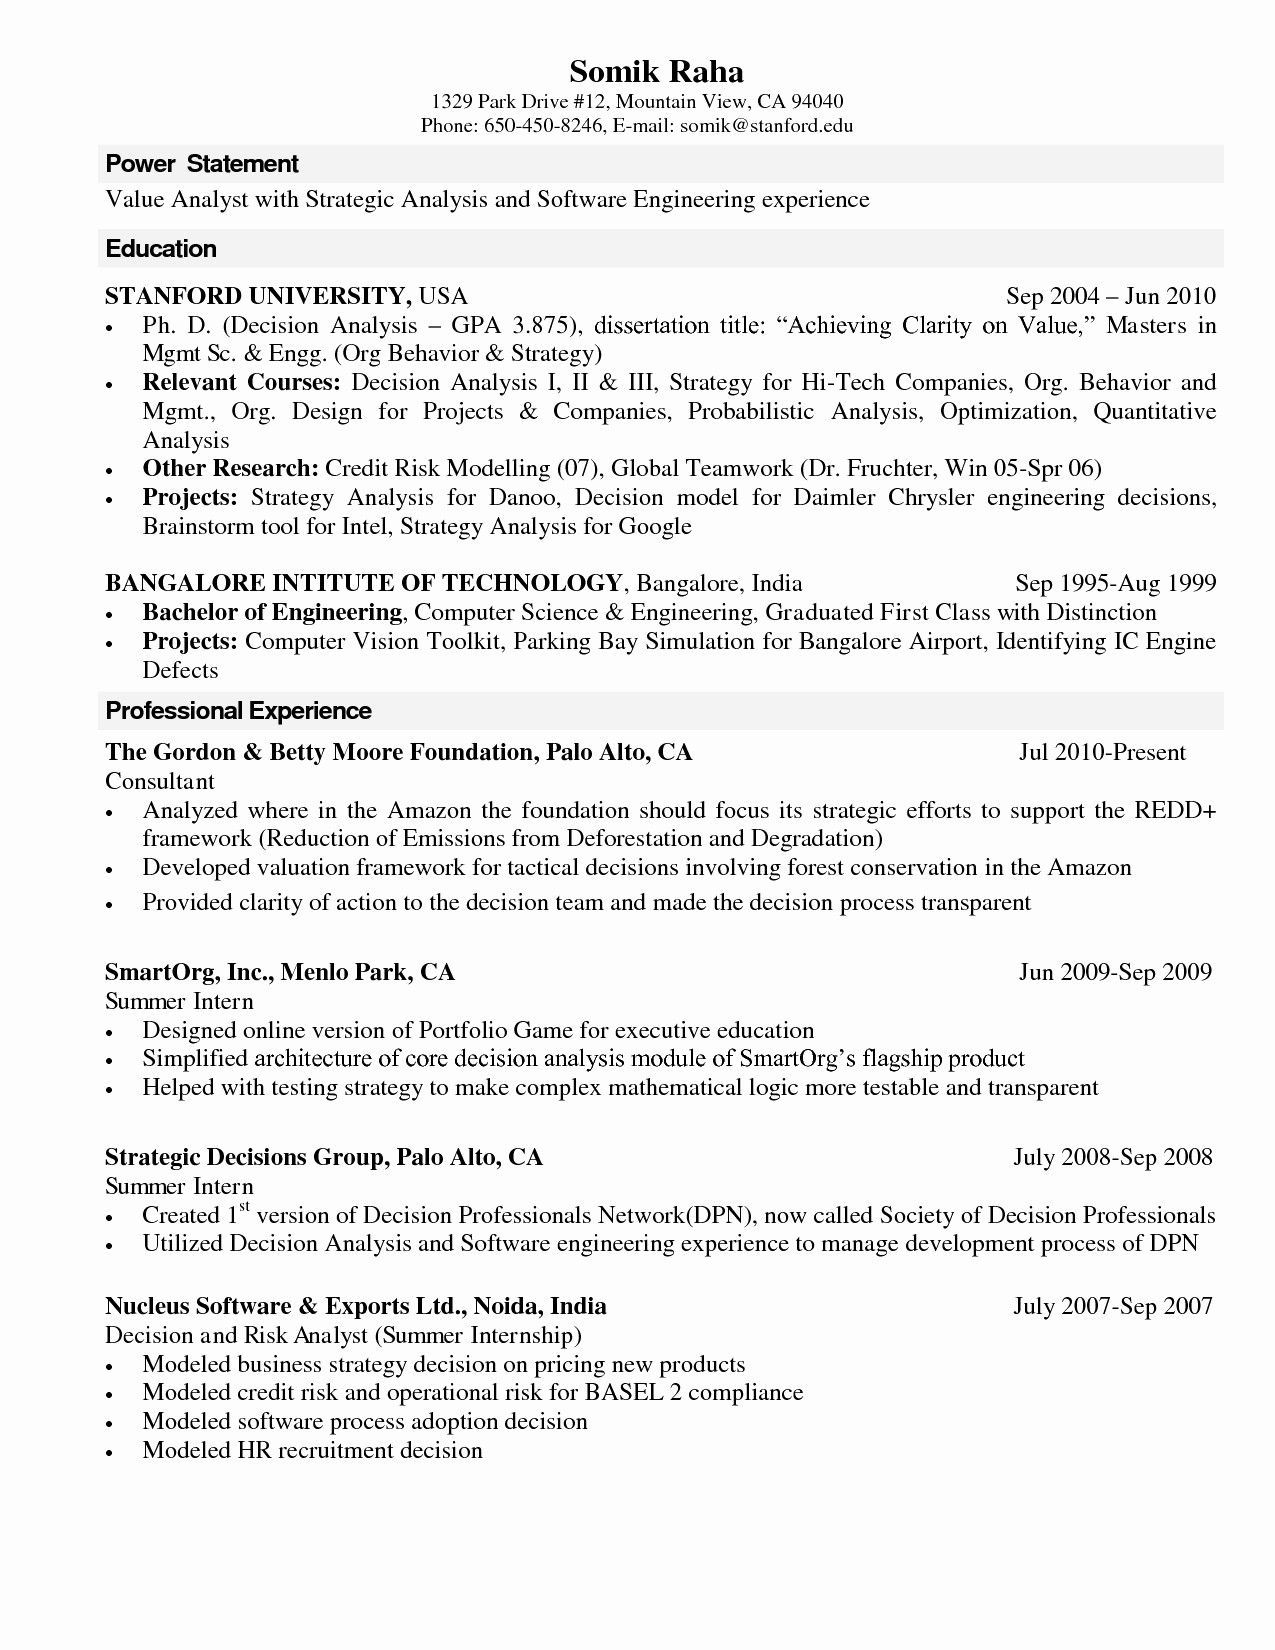 Advantages Of Engineering resume, Computer science